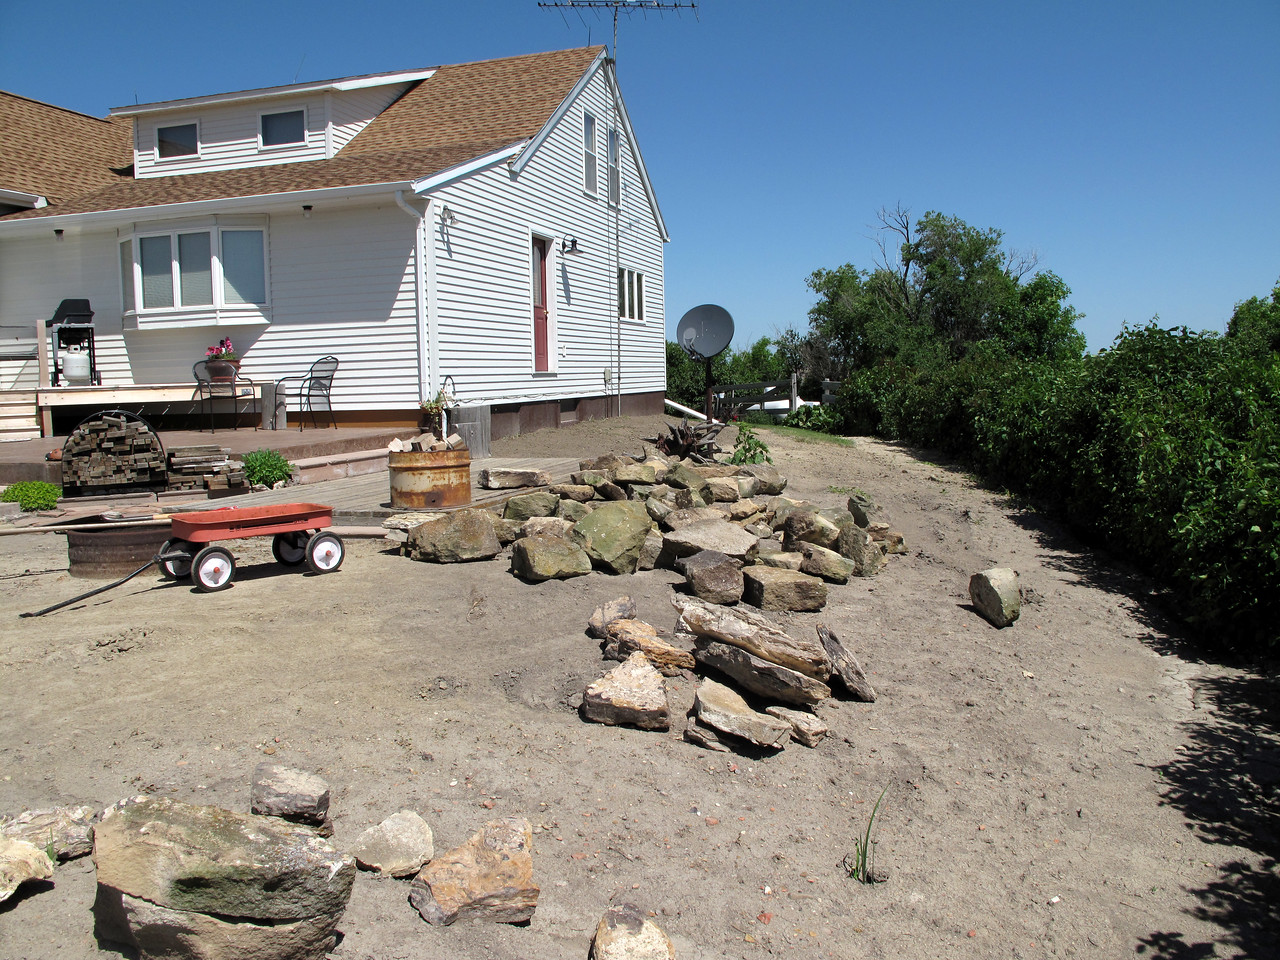 June 29, 2011<br /> First load of rocks unloaded at our home. Let's get this rockin' party started!